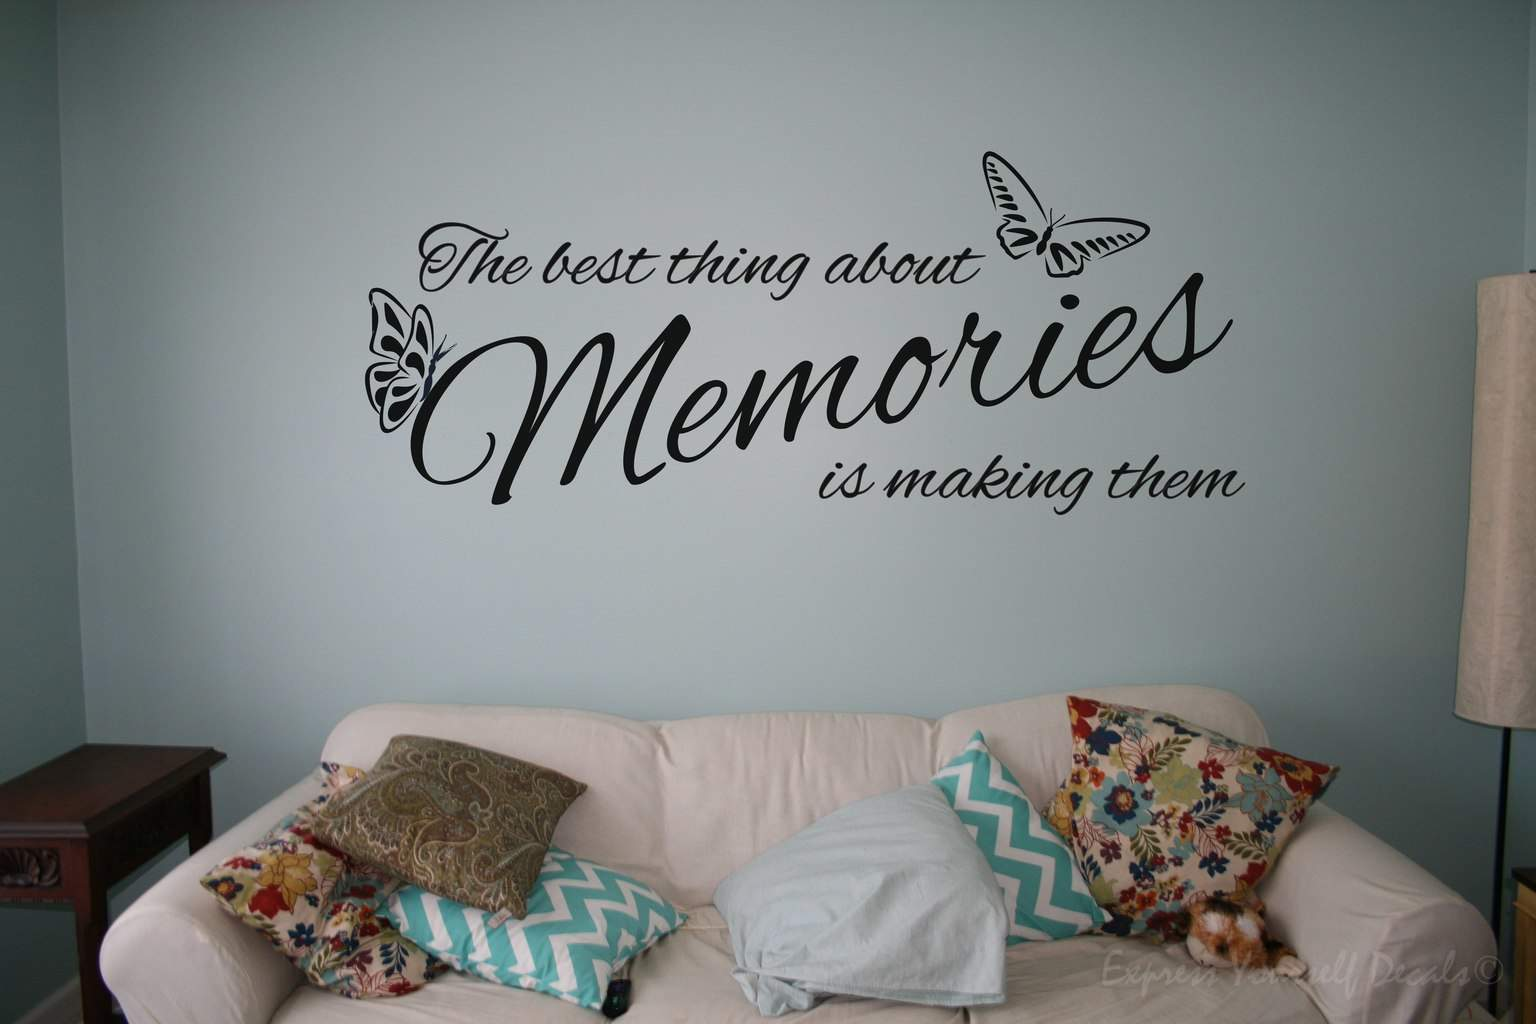 Childrens Bedroom Wall Murals The Best Thing About Memories Wall Decal Wall Decal